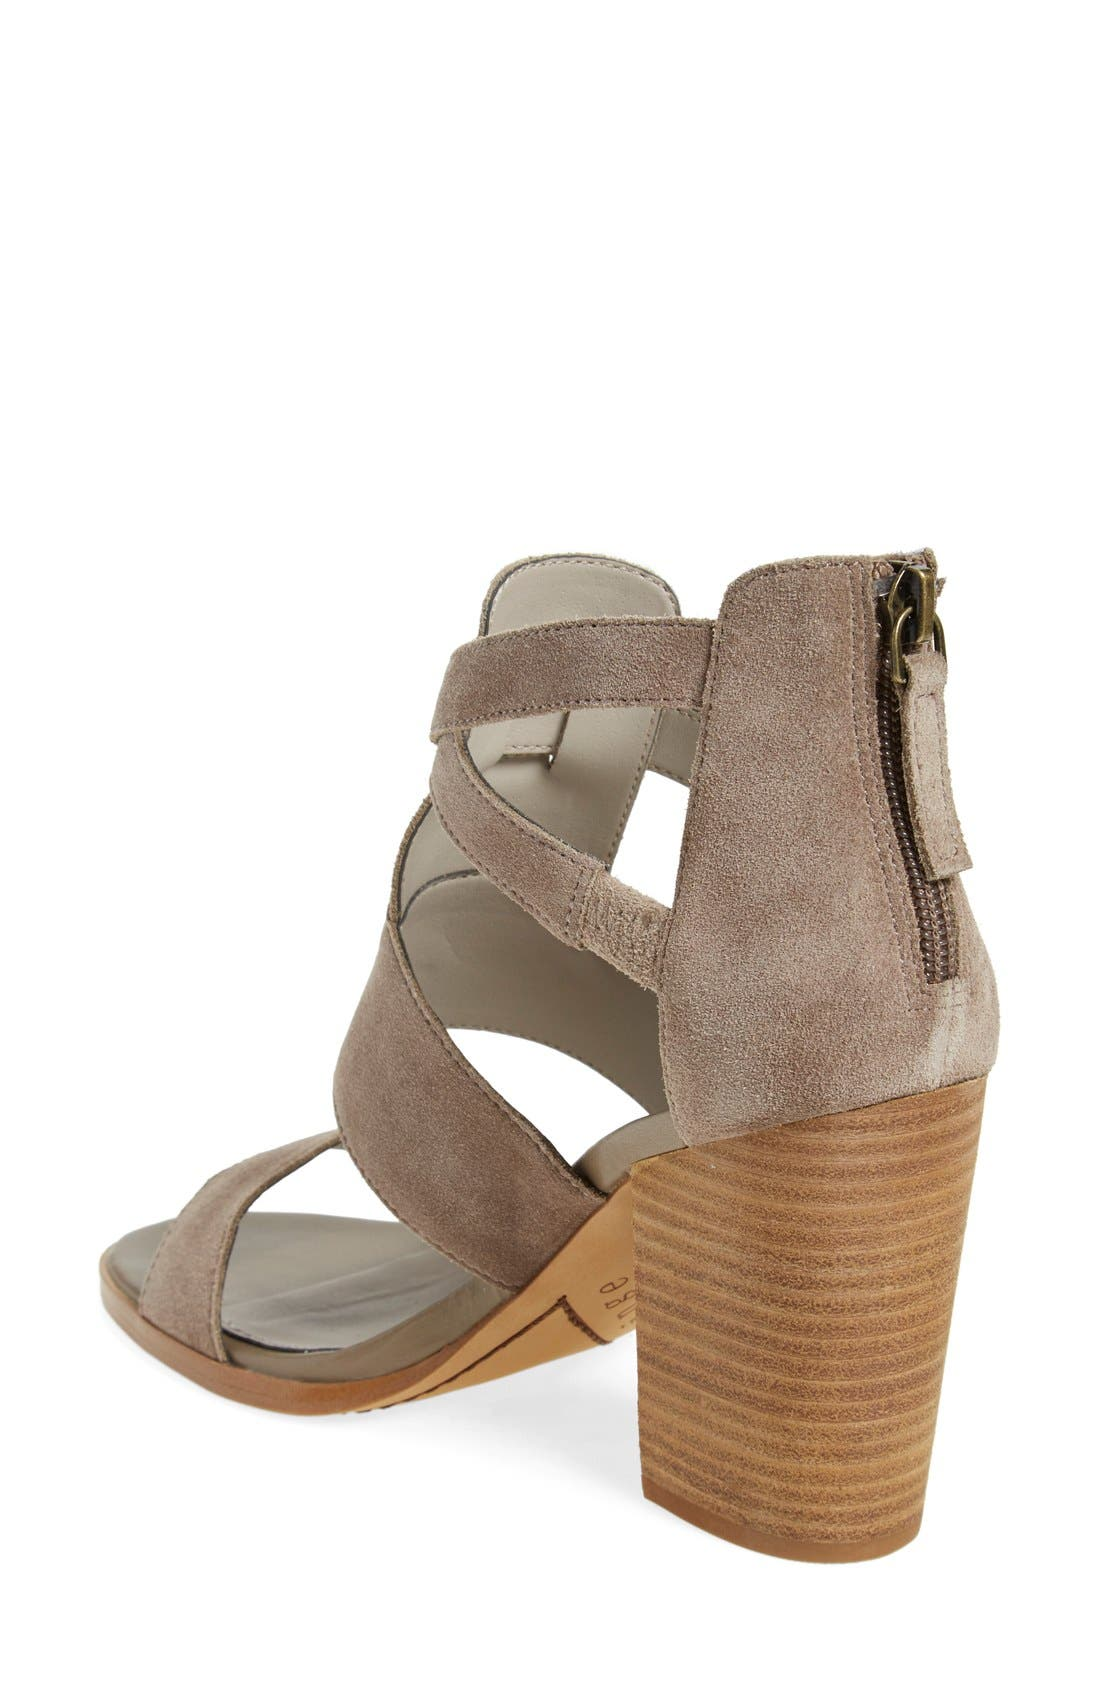 'Cora' Block Heel Sandal,                             Alternate thumbnail 4, color,                             Taupe Suede